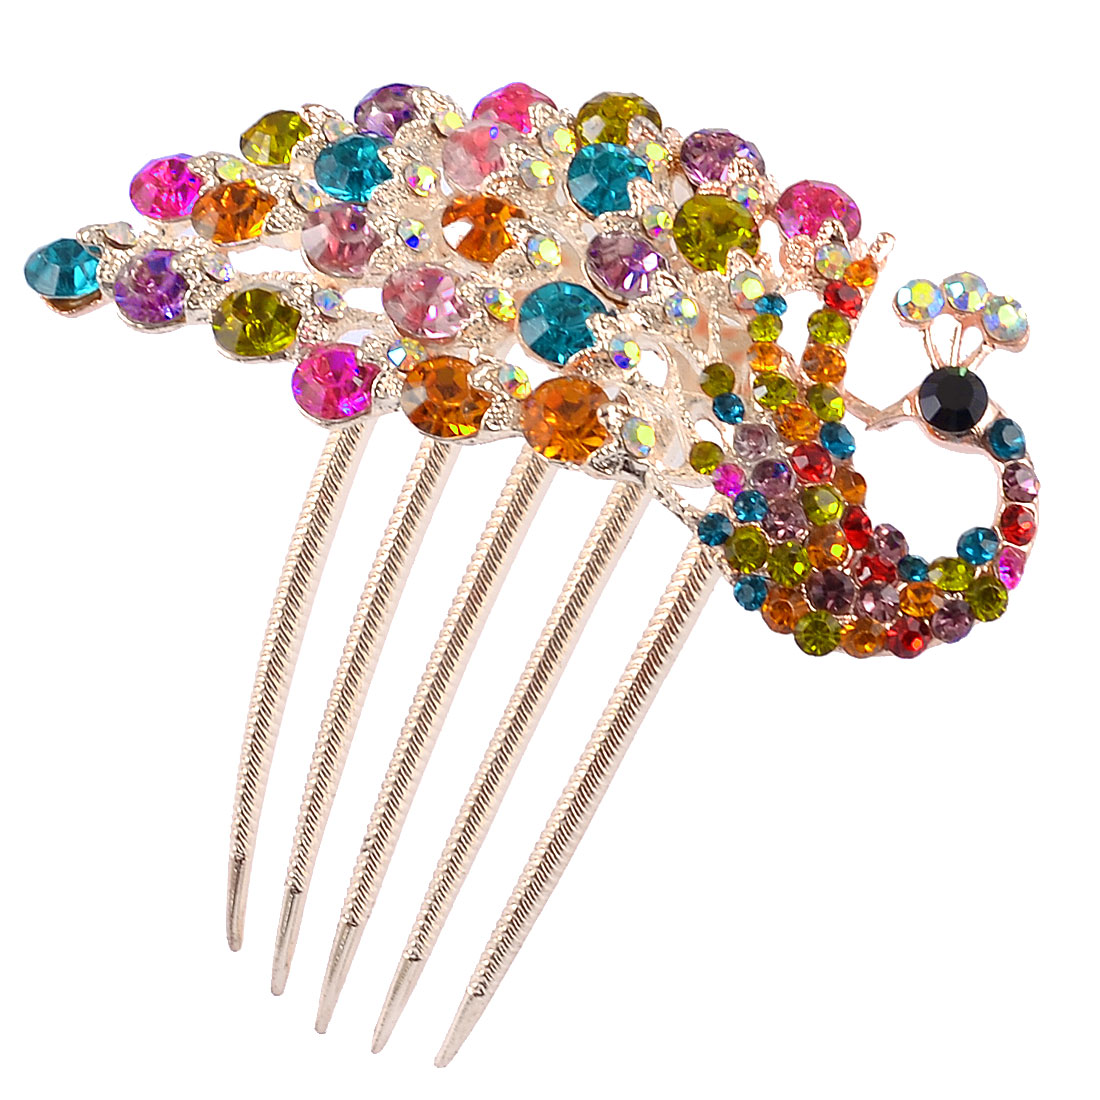 Colorful Bling Rhinestones Peacock Gold Tone Metal Prong Hair Comb Claw for Lady